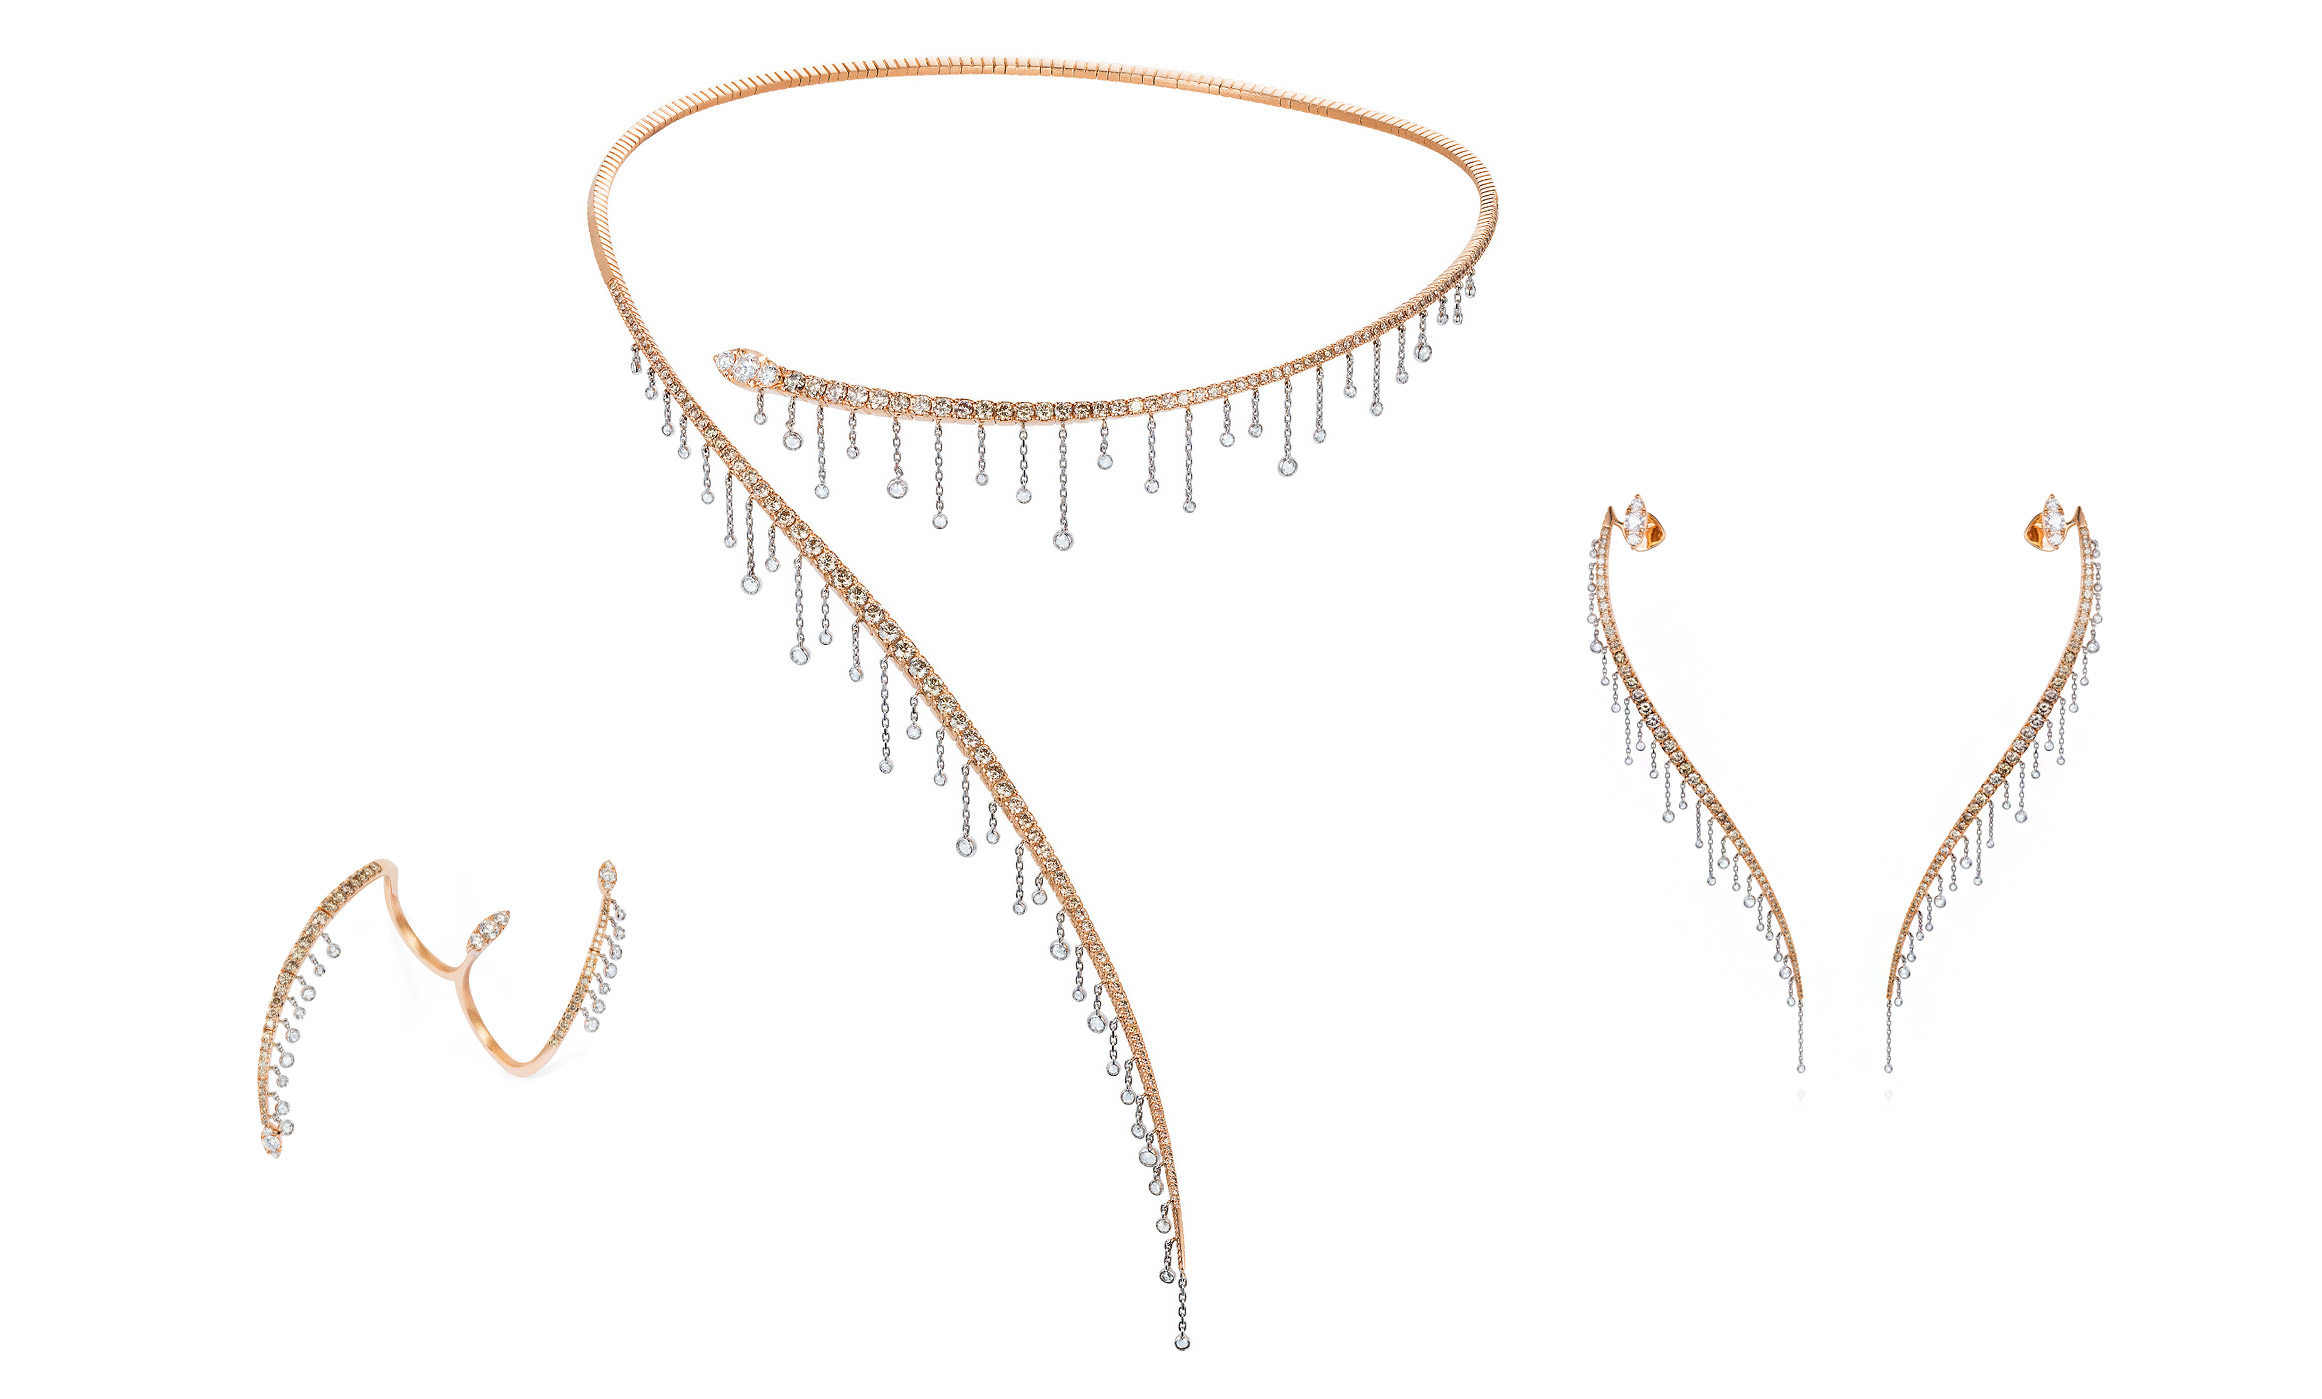 Rose gold and diamonds earrings, flexible necklace and a ring from Mike Joseph Waterfall collection